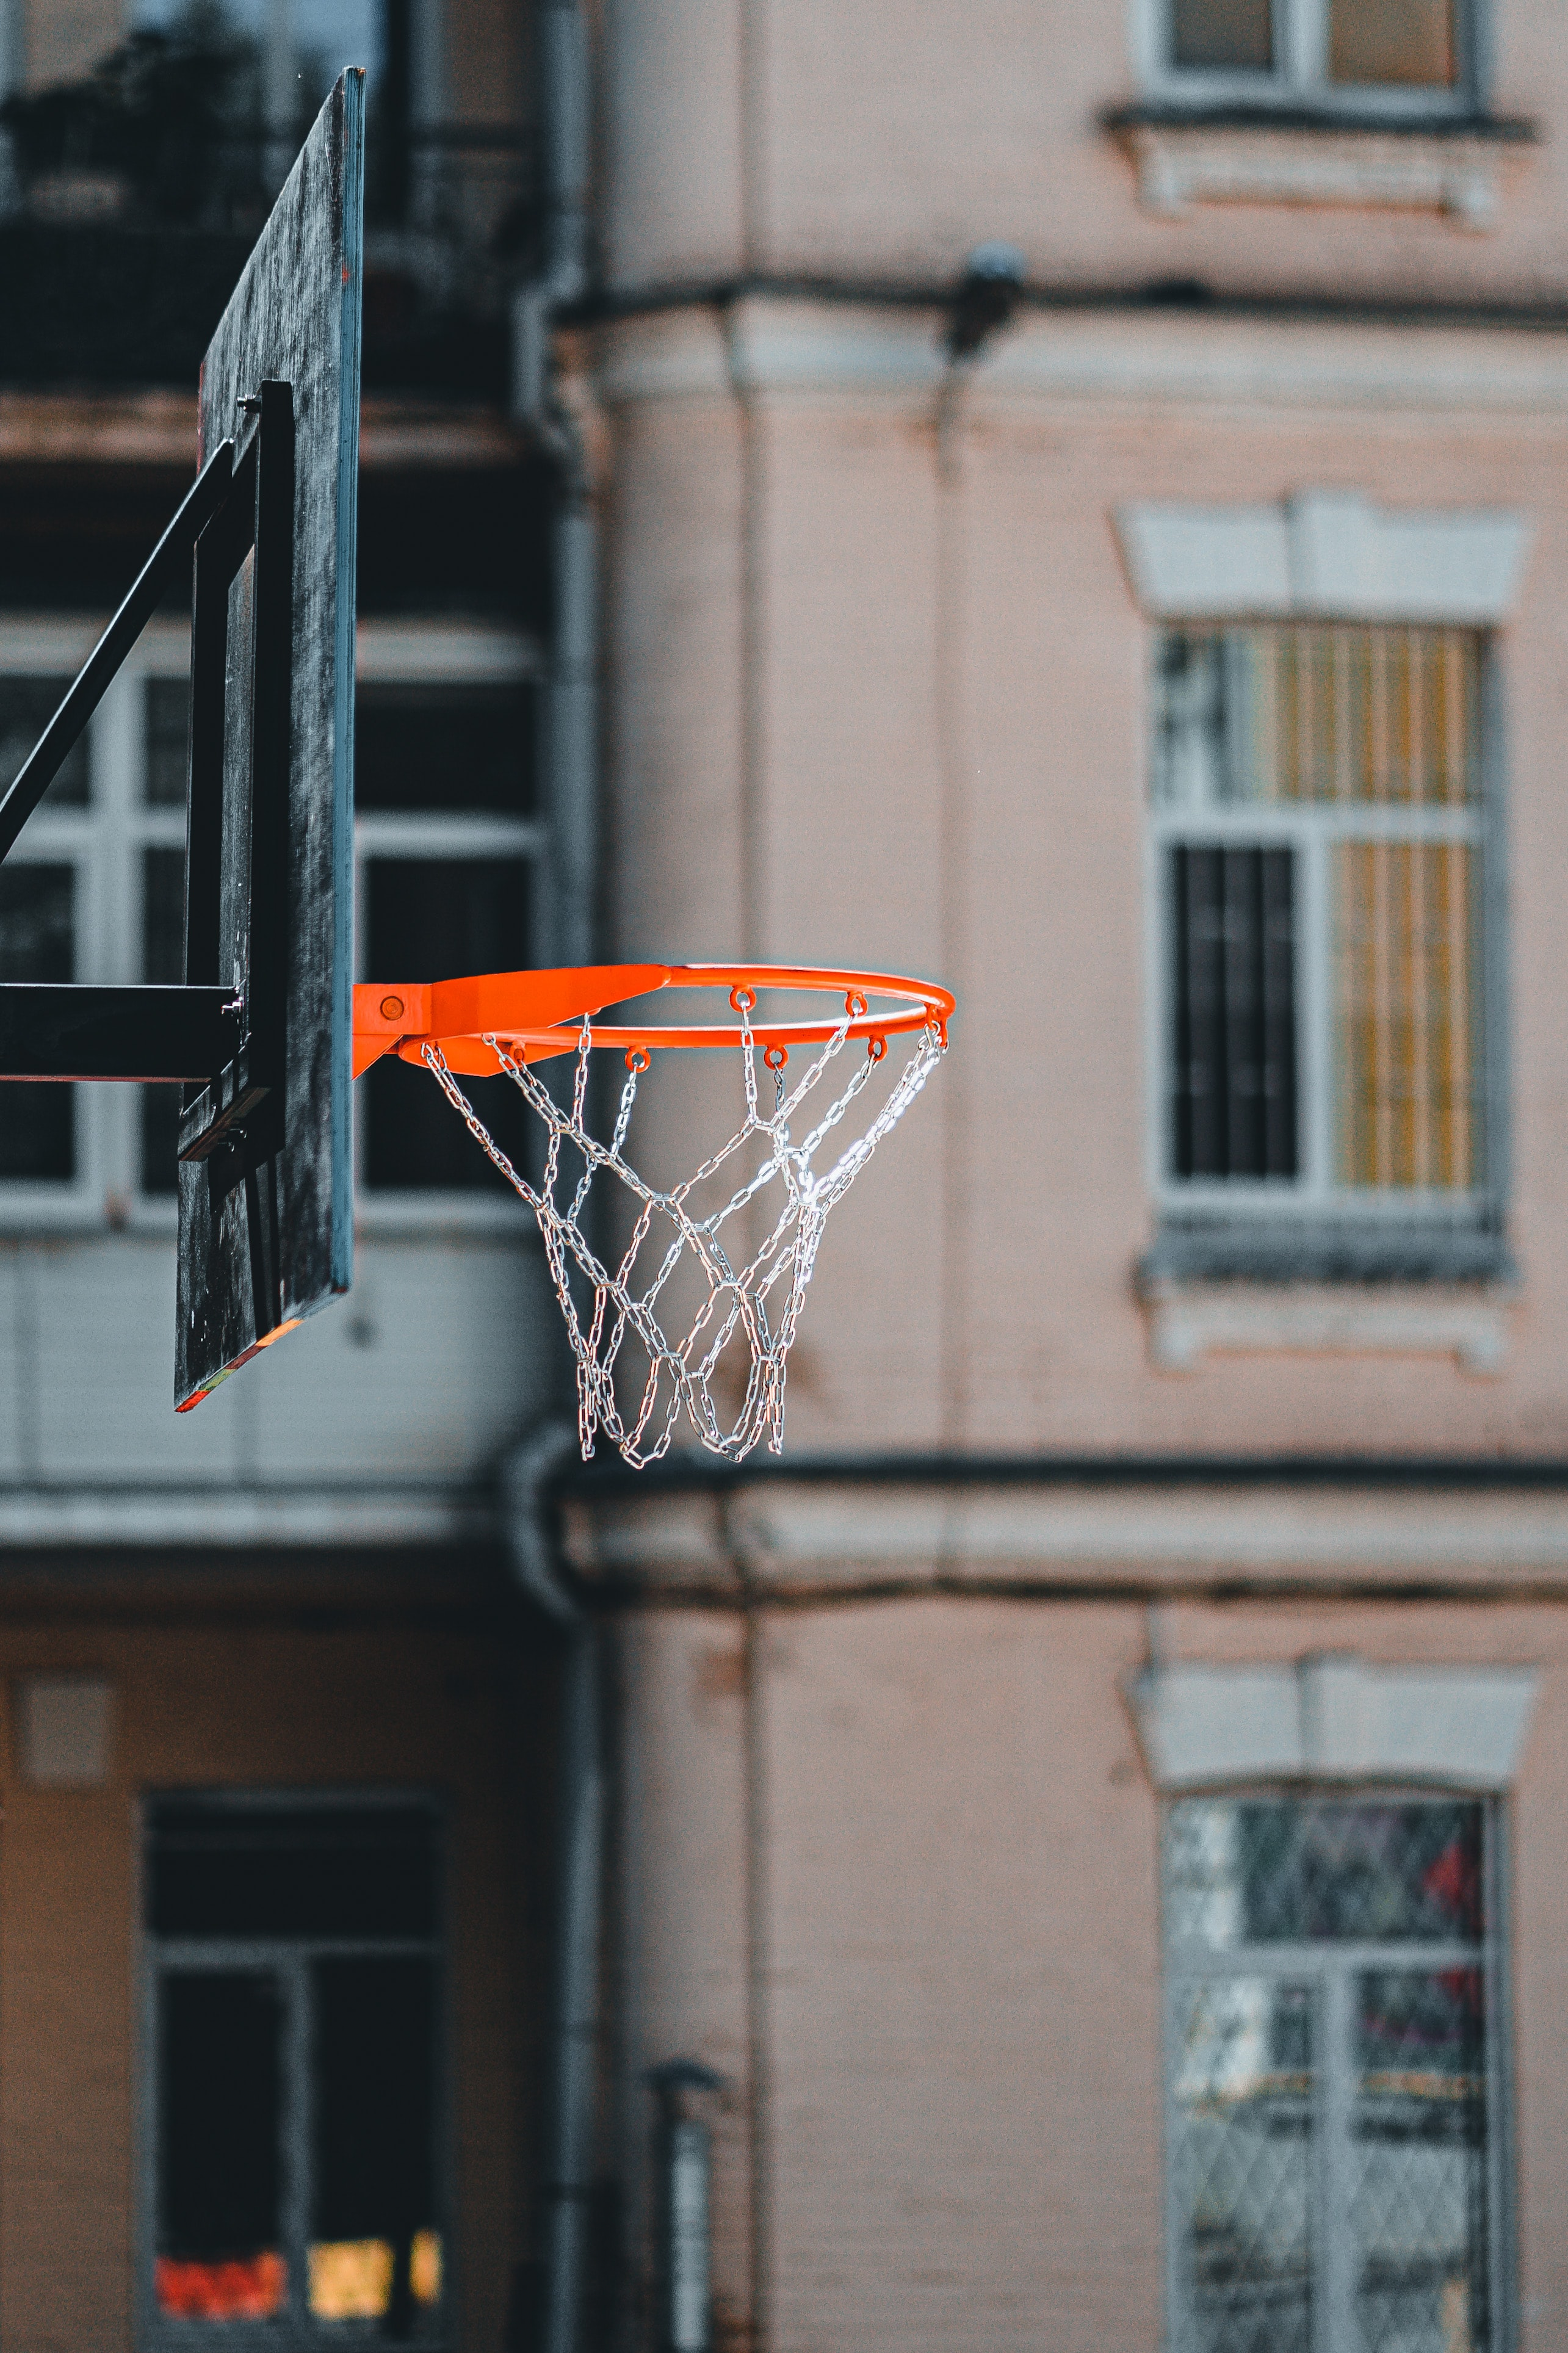 130492 Screensavers and Wallpapers Basketball for phone. Download Sports, Basketball, Basketball Backboard, Basketball Shield, Ring, Chains pictures for free